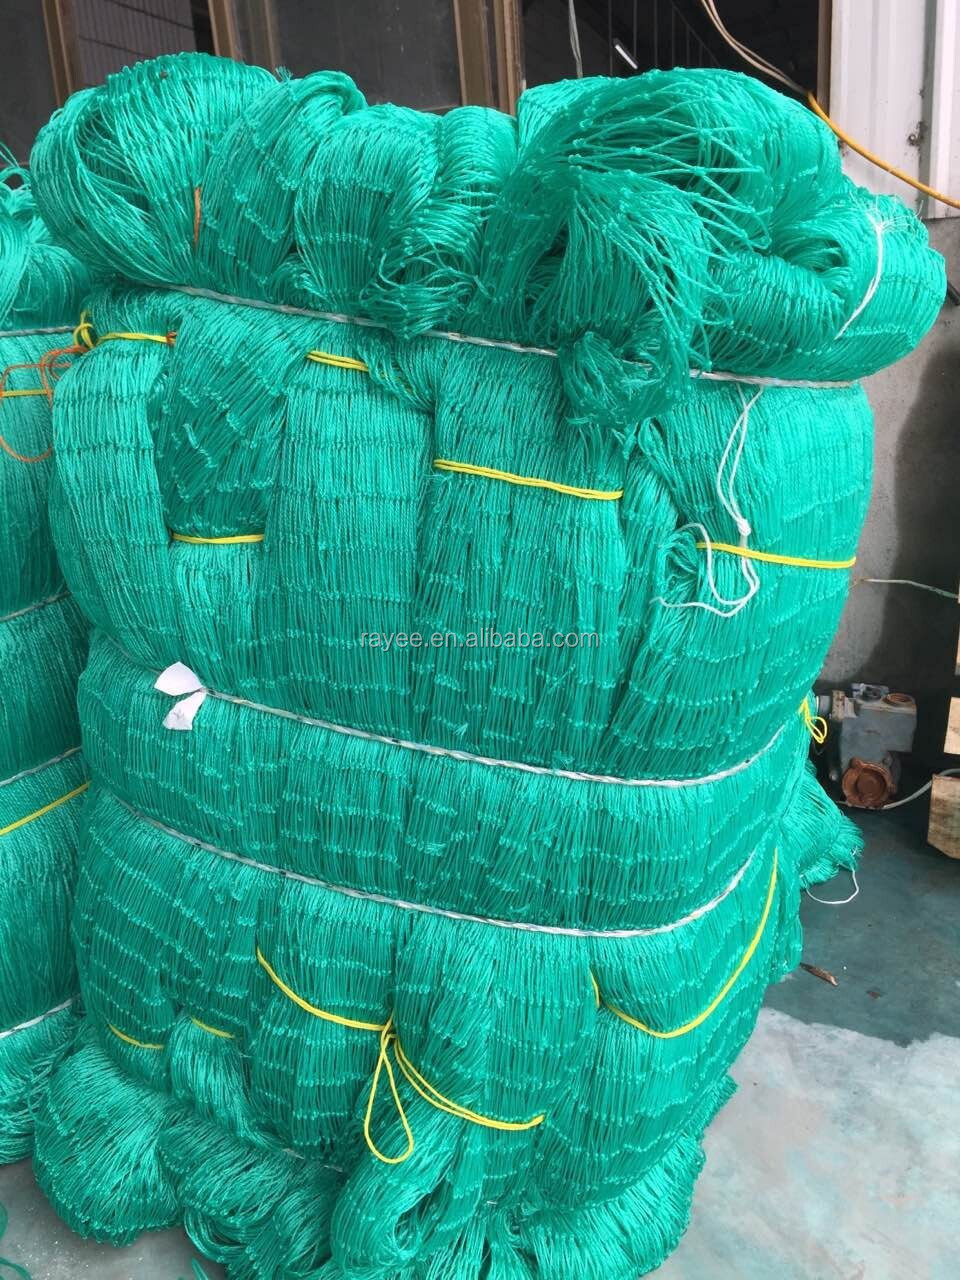 nylon fishing net, Monofilament multifilament fishing net factory price ,hot sales safety nets winwows balcony red de pesca